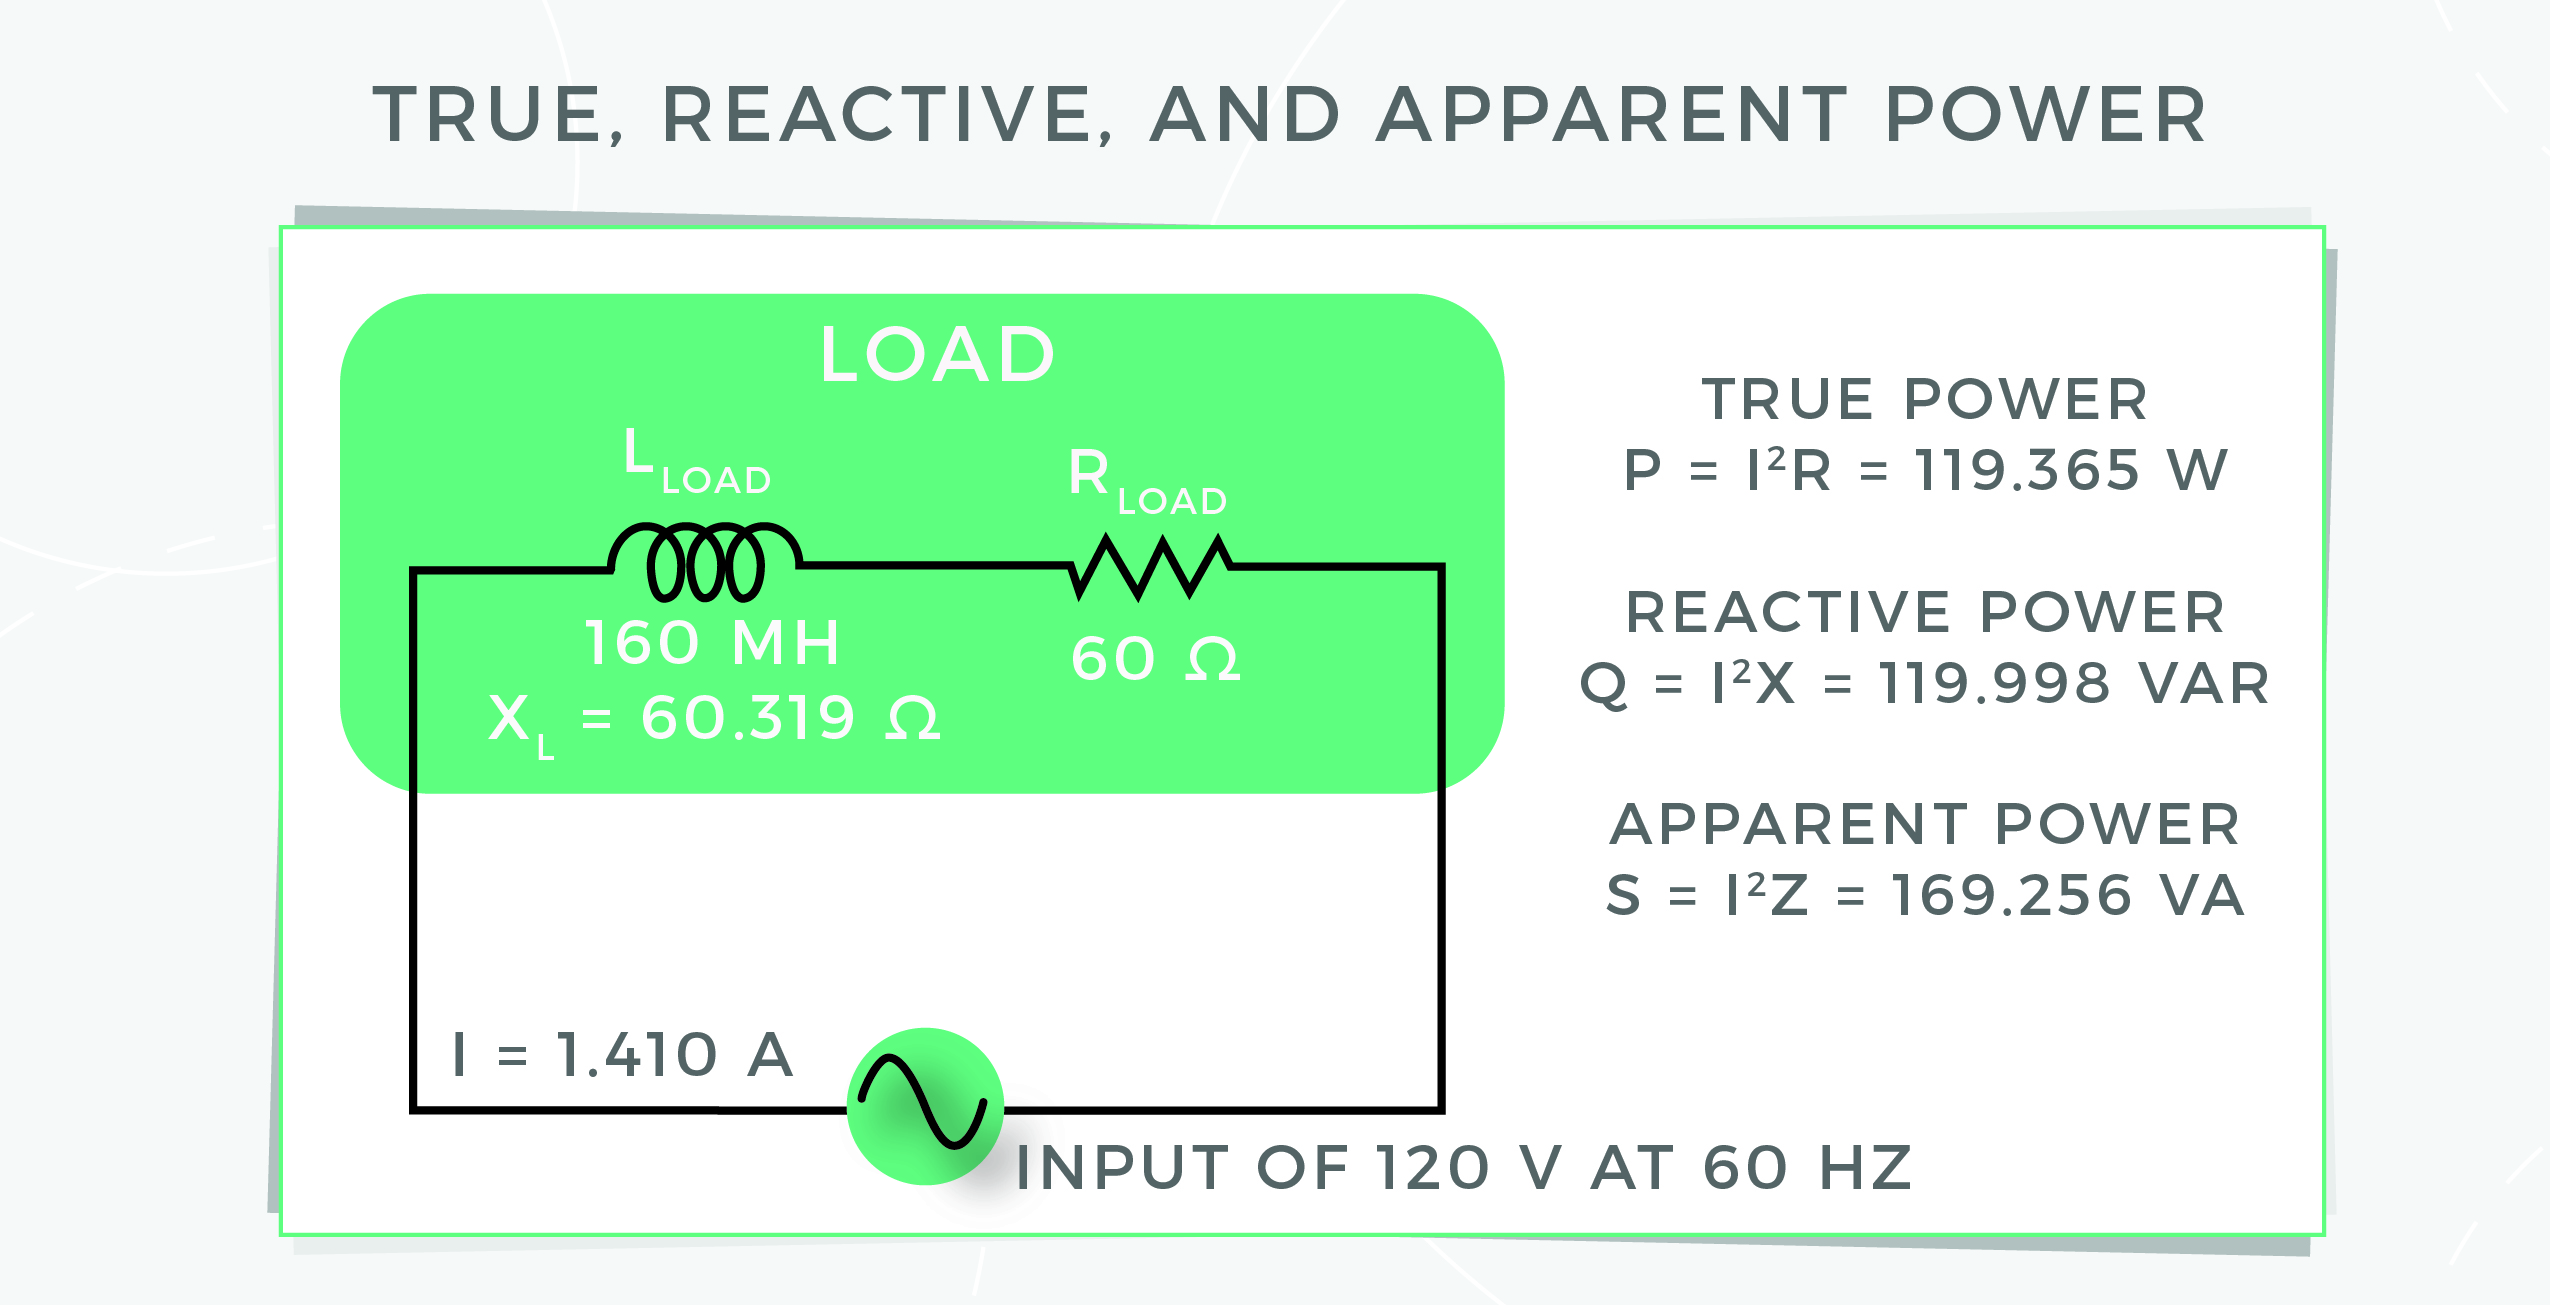 power terms image including true power, reactive power, and apparent power.